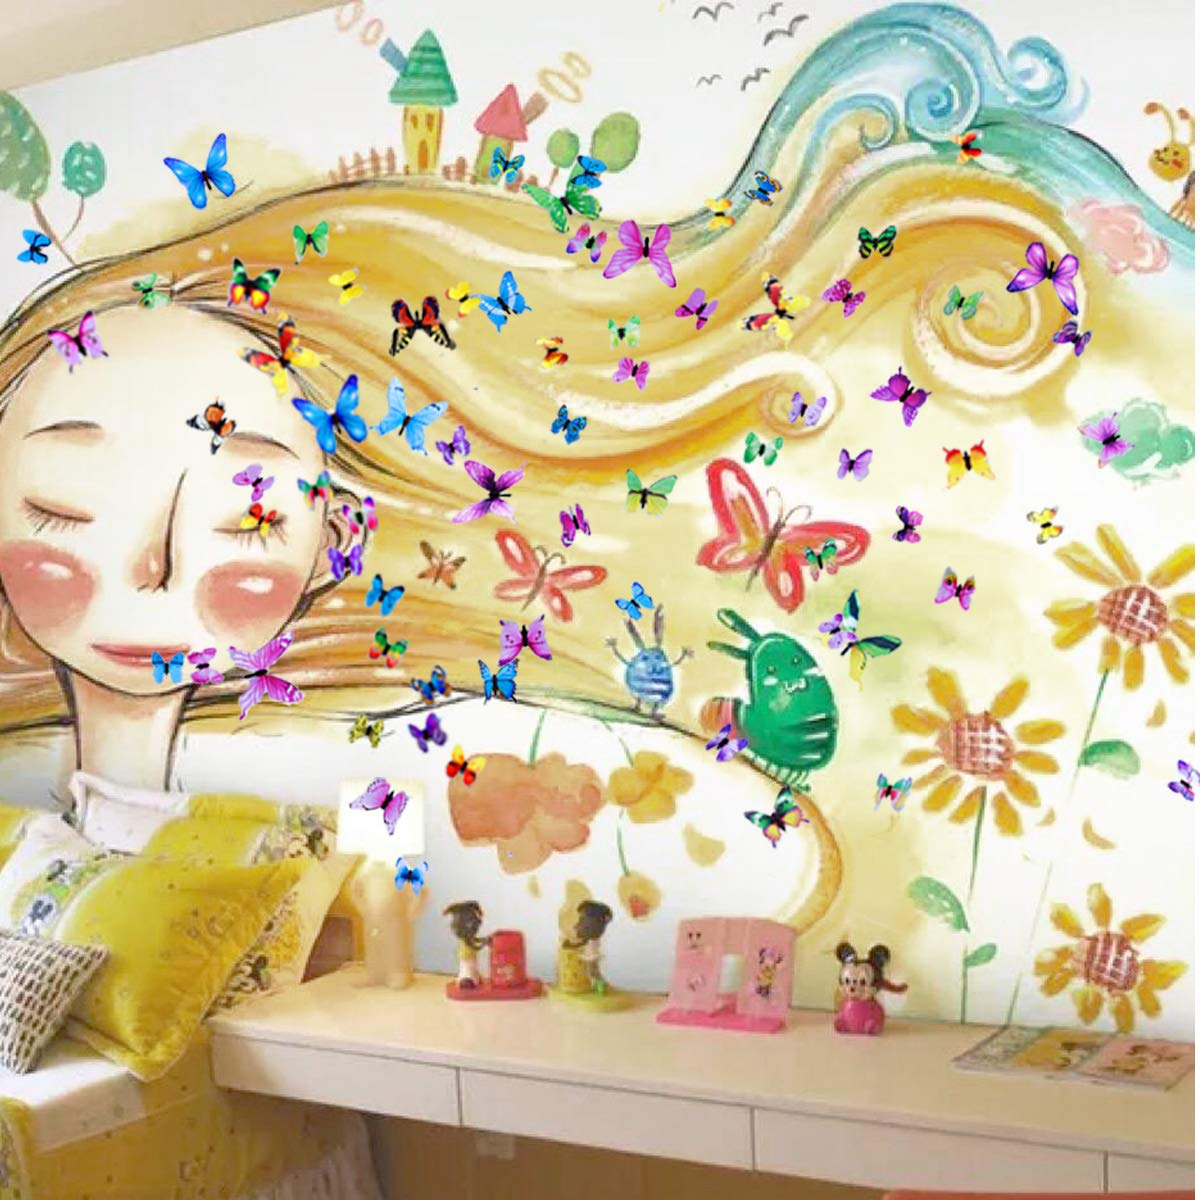 Wall Decals Butterfly 3D Sticker Decor - 72PCS Home Decoration for Living Room, Kids and Teen Girls Removable Mural Wall Art, Baby Nursery Bedroom Bathroom, Waterproof DIY Crafts by Ewong (Image #7)